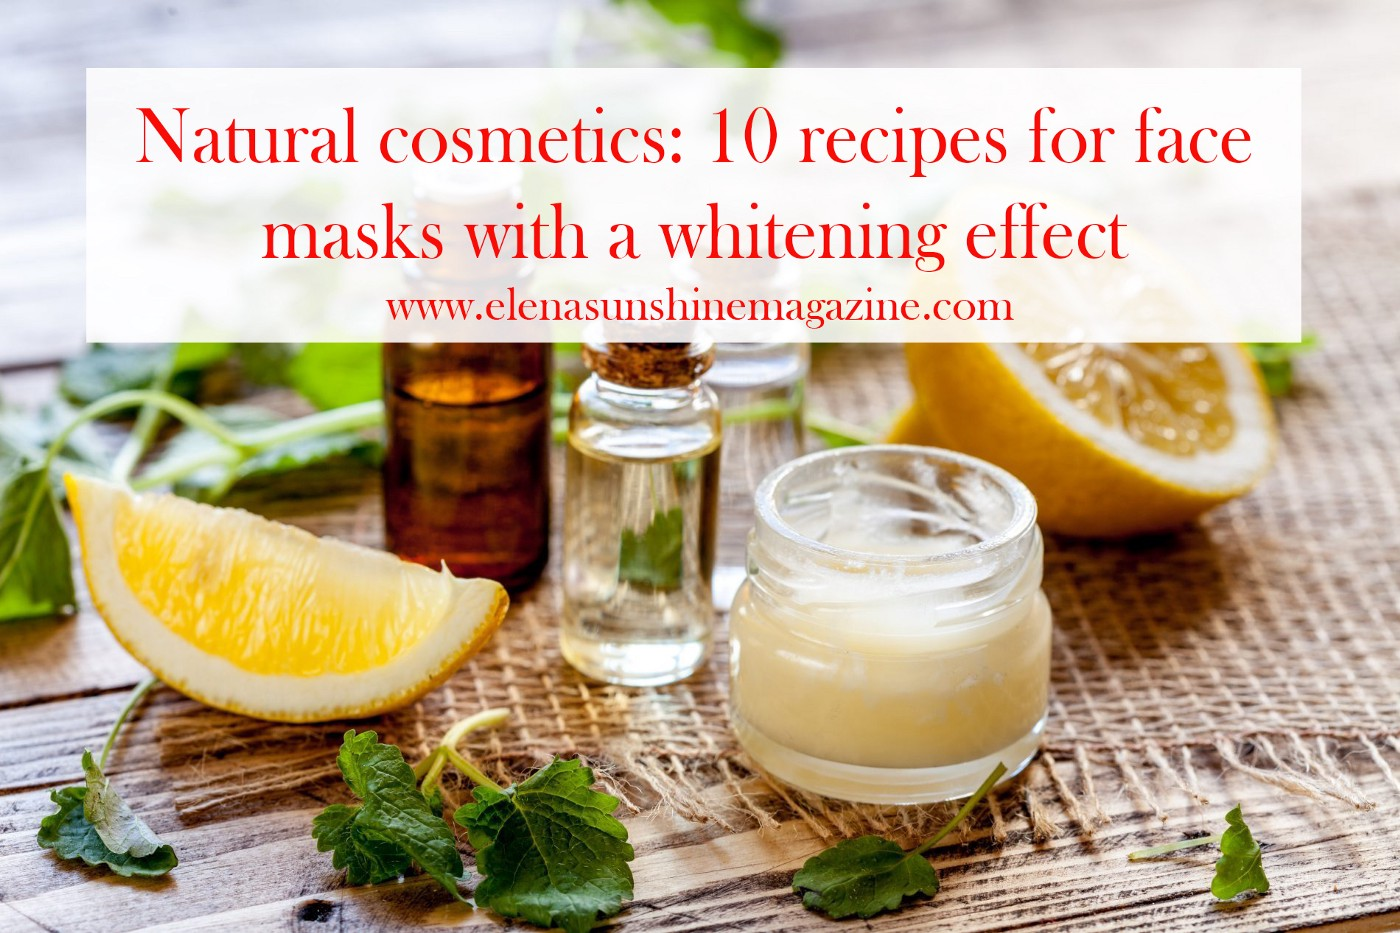 Natural cosmetics: 10 recipes for face masks with a whitening effect